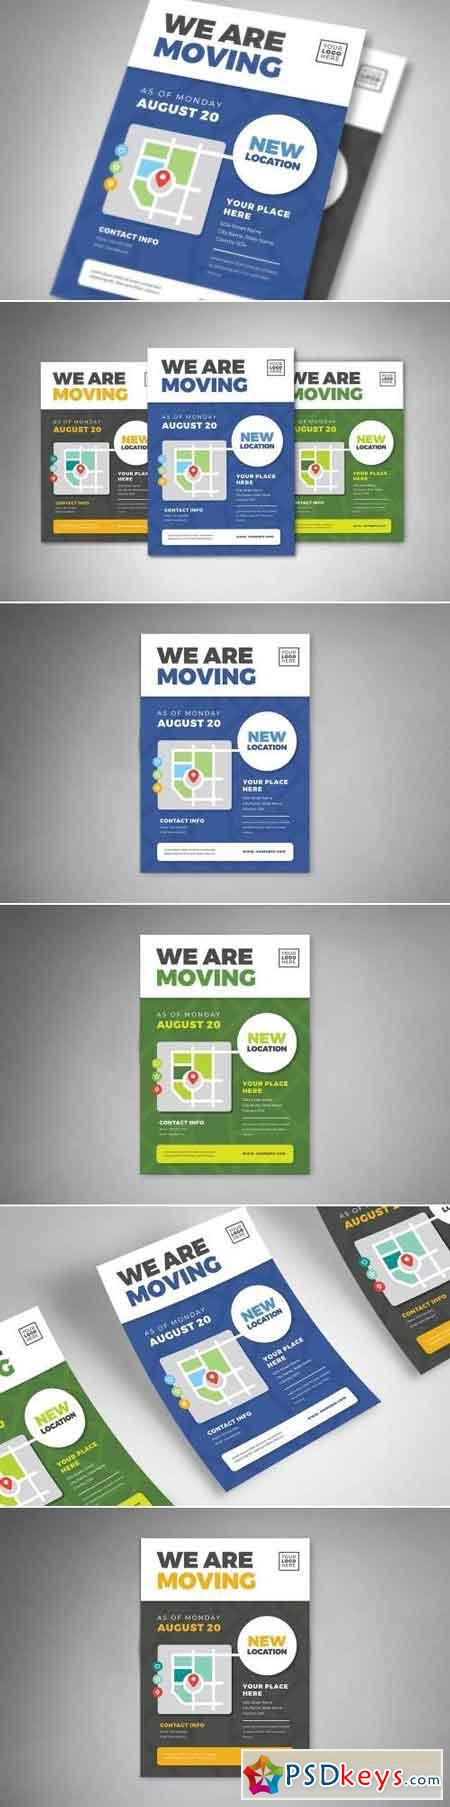 We Are Moving Flyer Templates